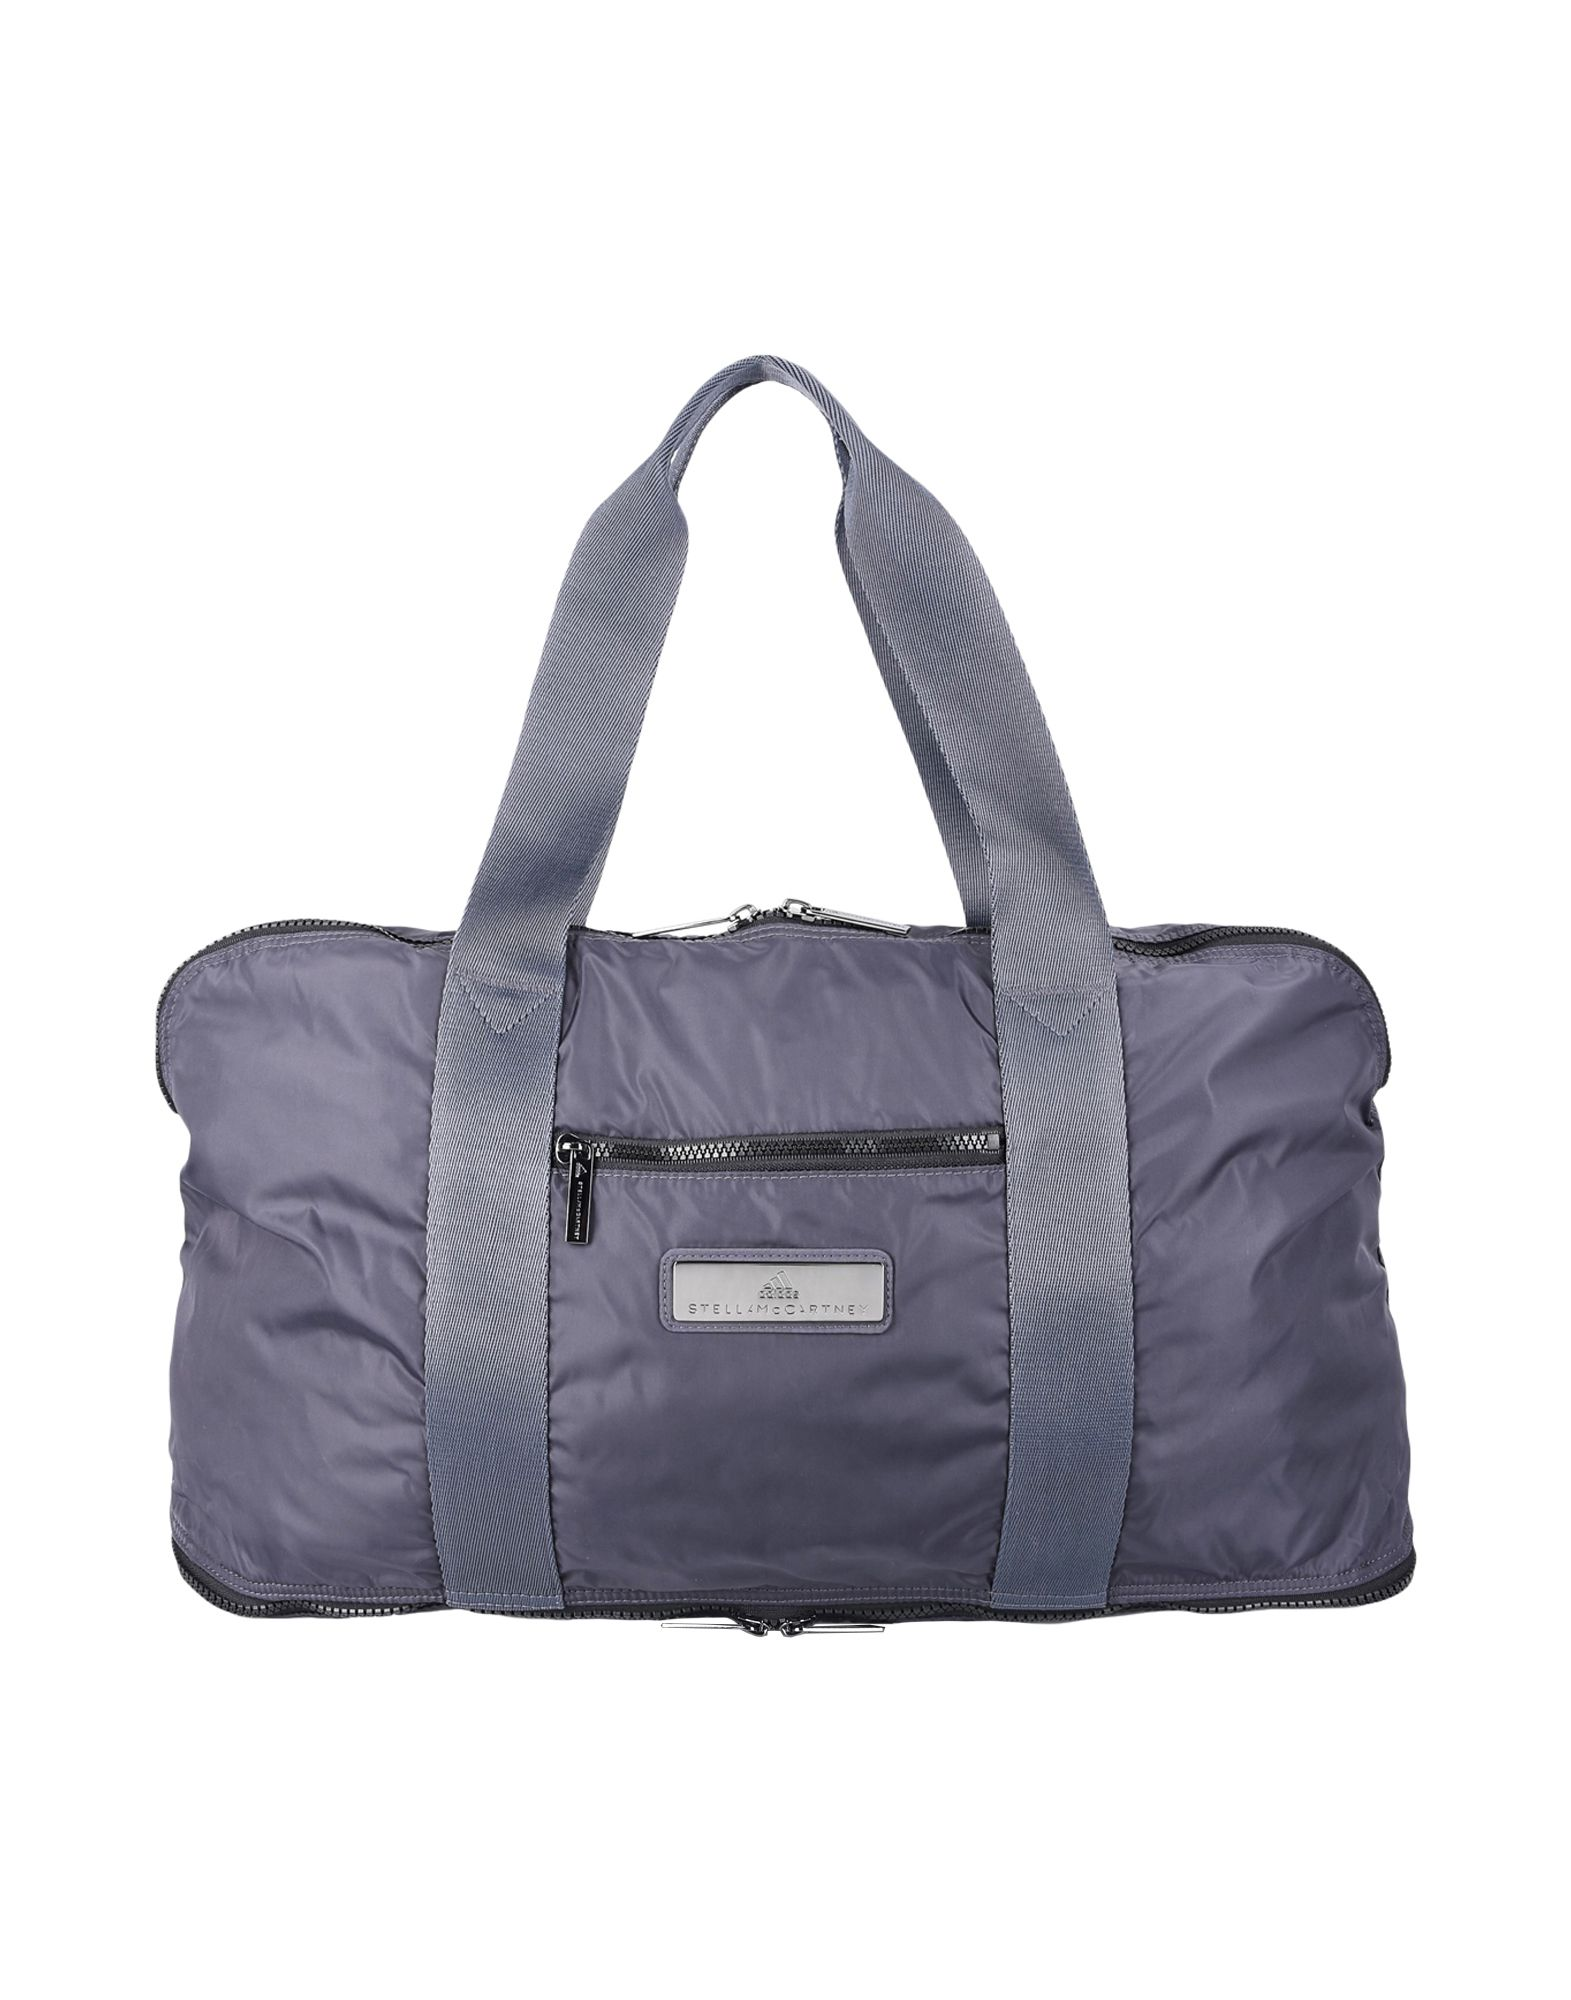 Adidas By Stella Mccartney Yoga Bag M